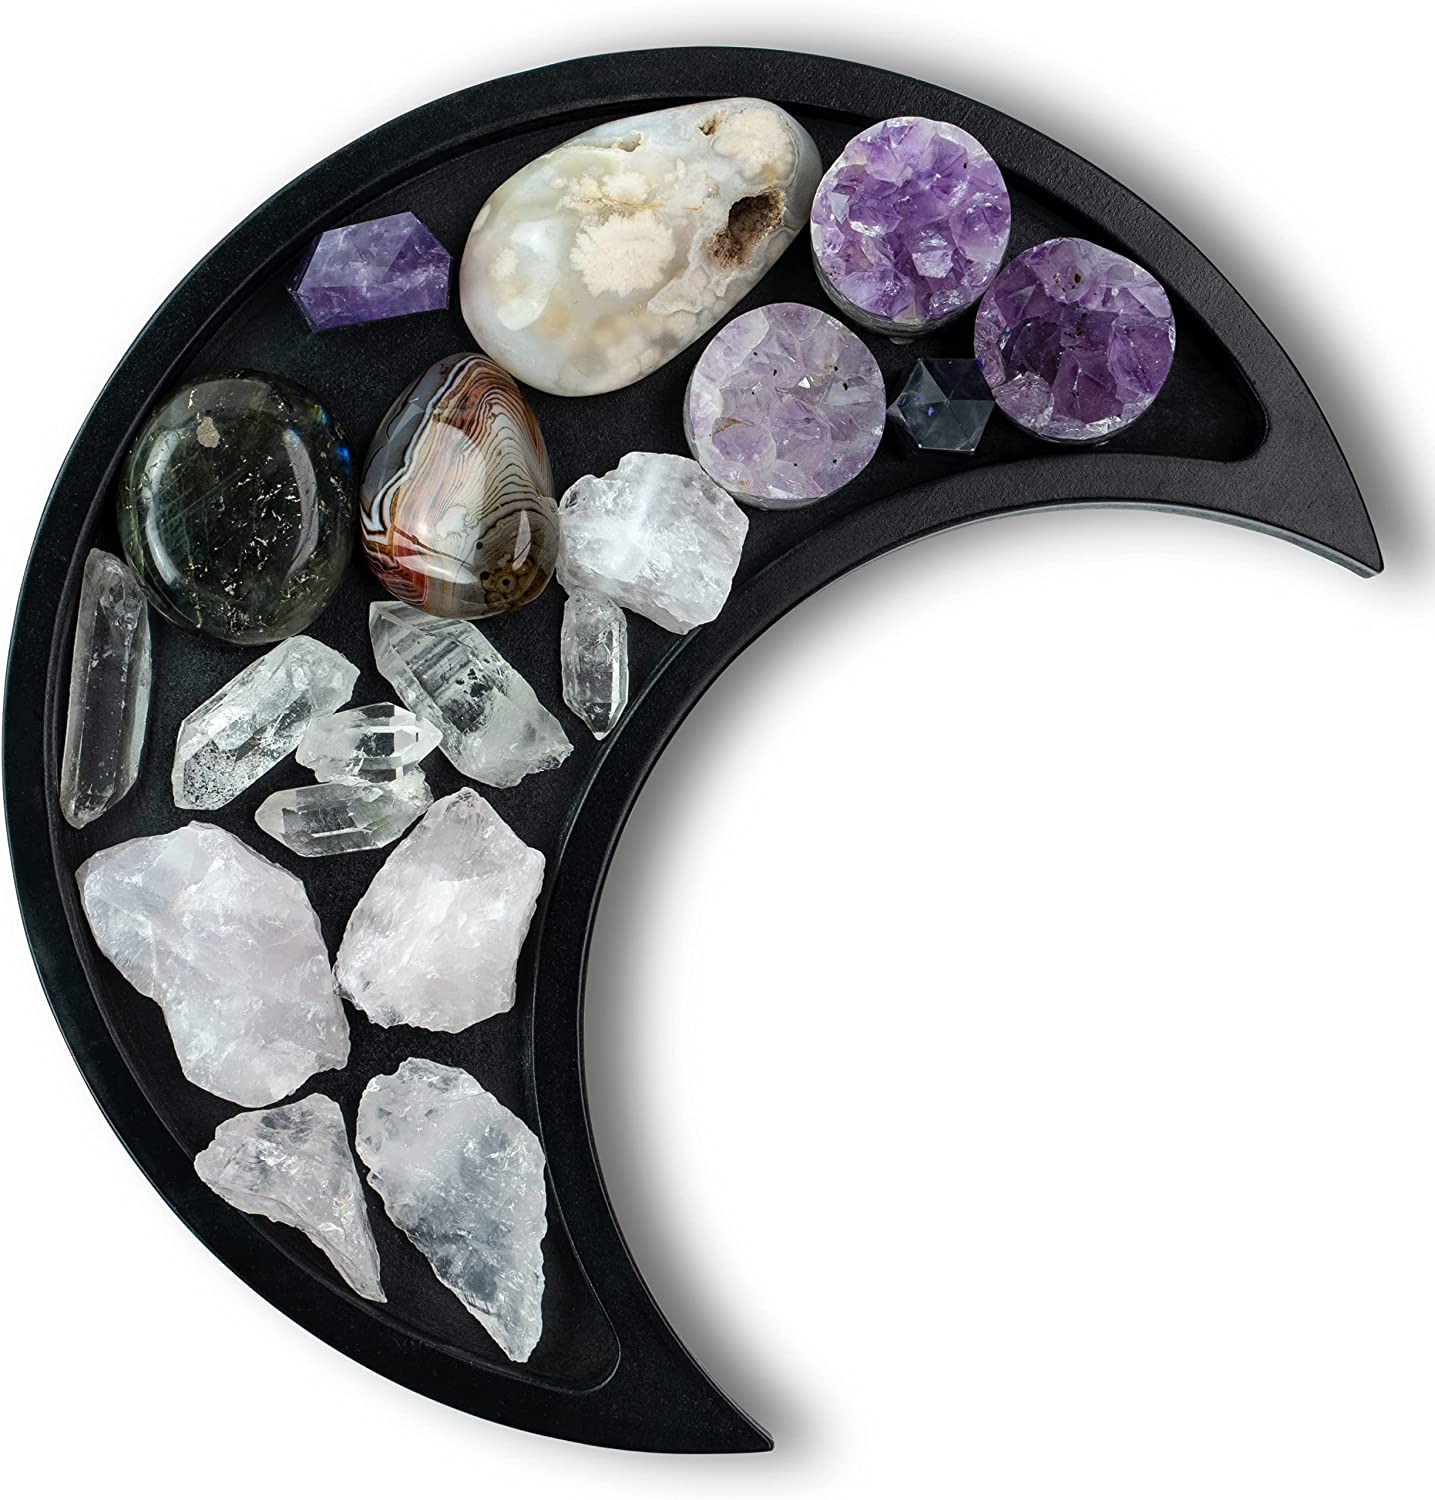 Moon Tray Crystal Holder Display - Black Wooden Crystal Tray for Stones, Healing Crystals Storage and Organizer - Crescent Gothic Witchy Coffin Spiritual Decor - Essential Oil Holder - Jewelry Dish